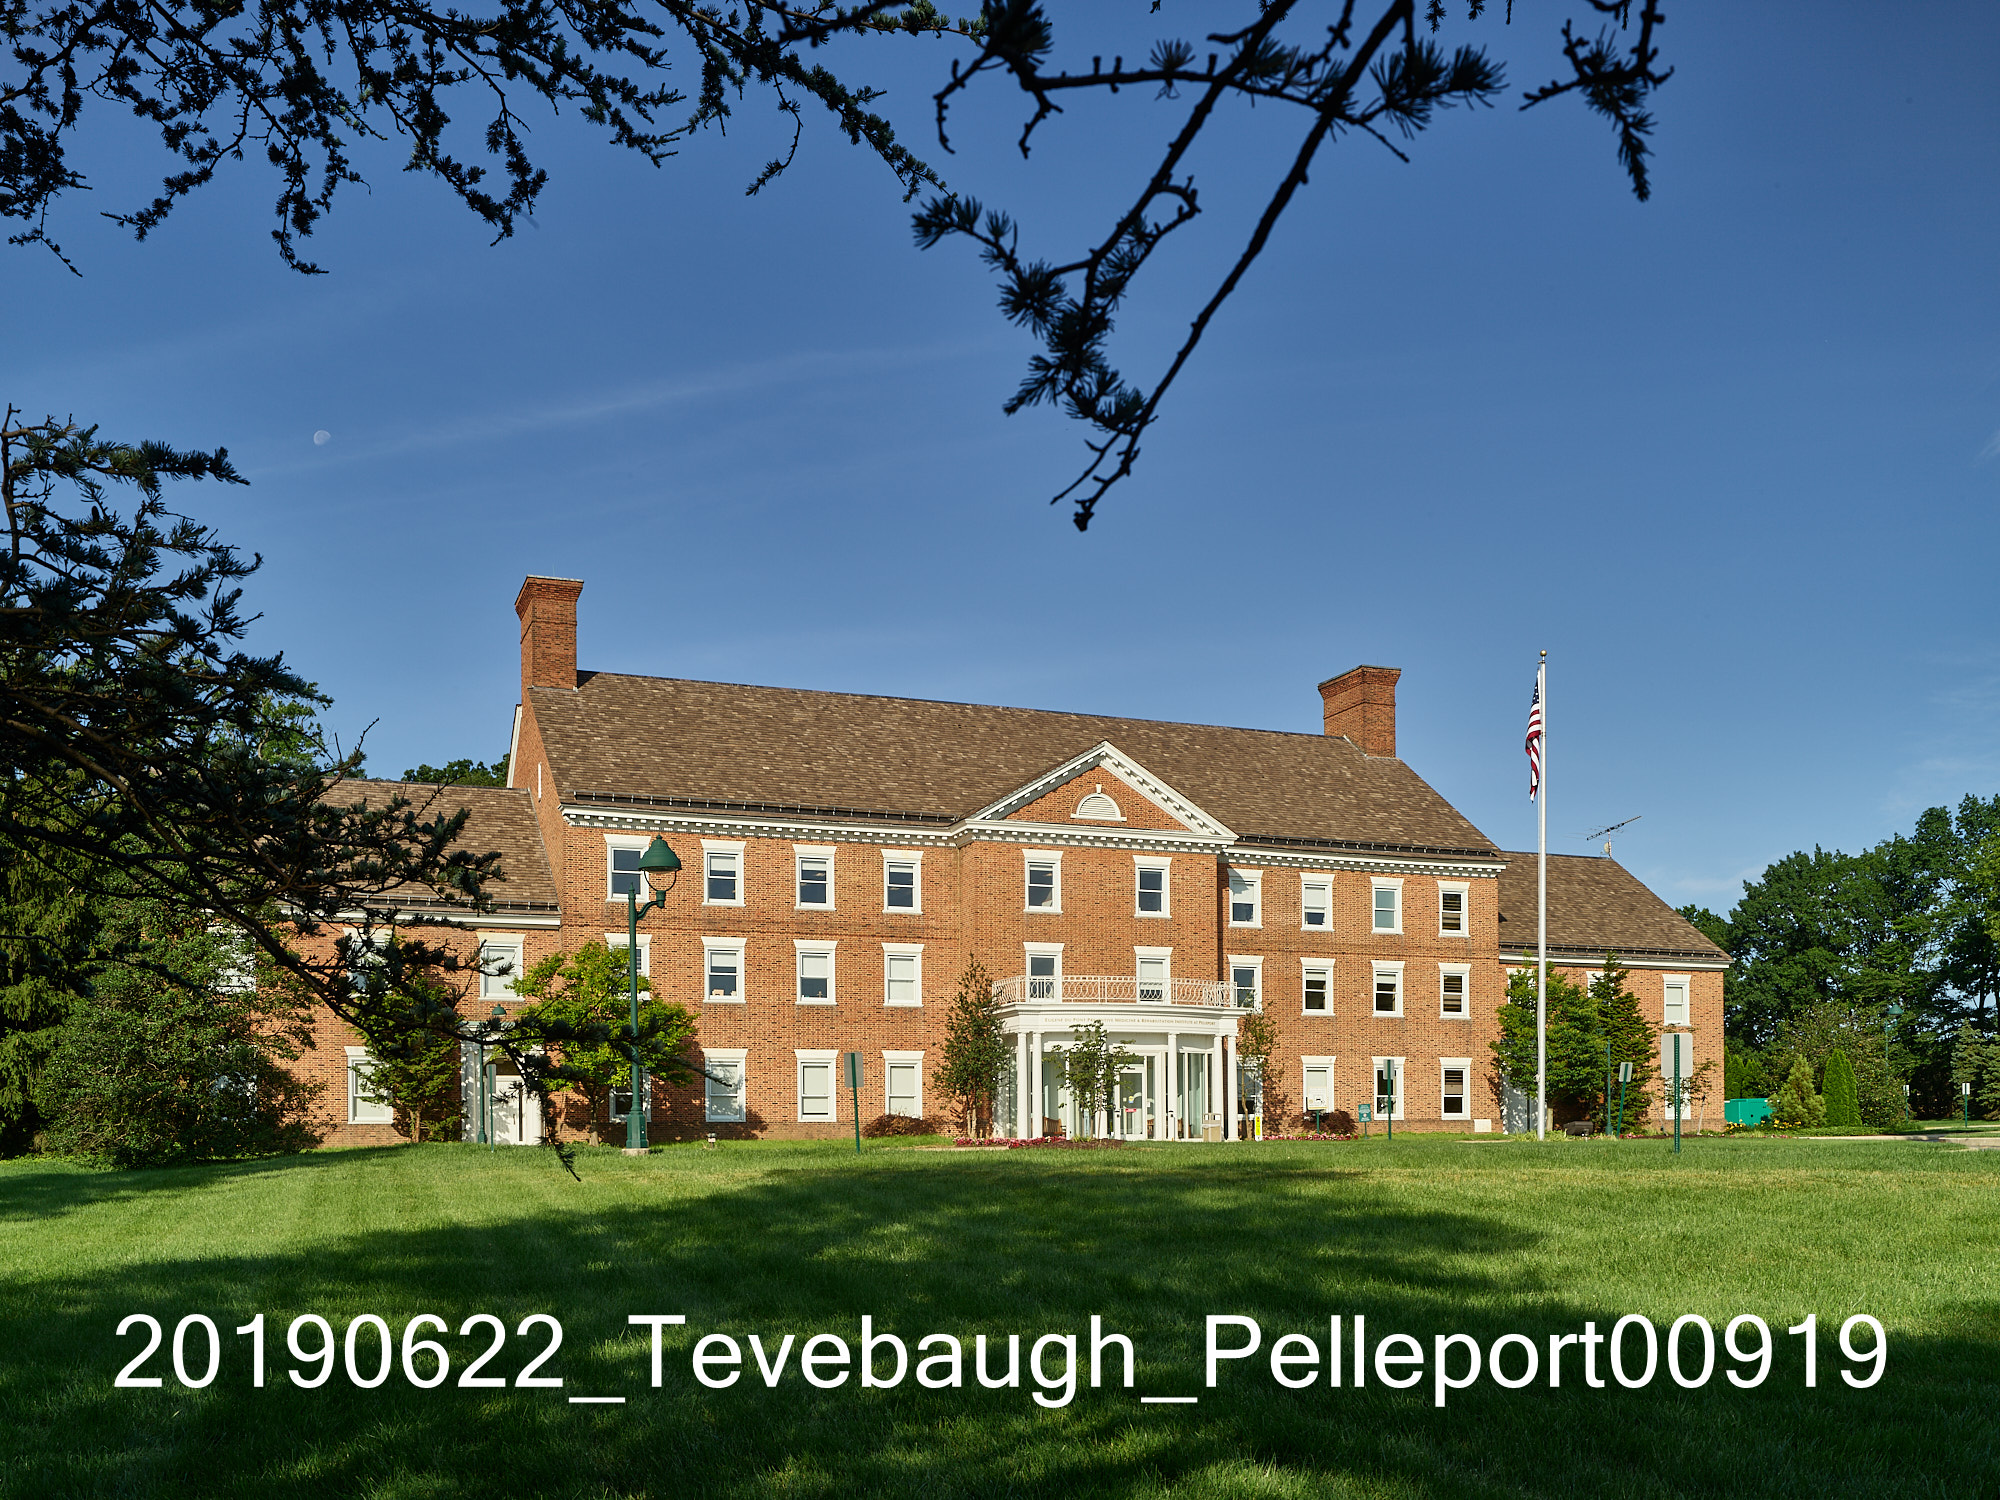 20190622_Tevebaugh_Pelleport00919.jpg